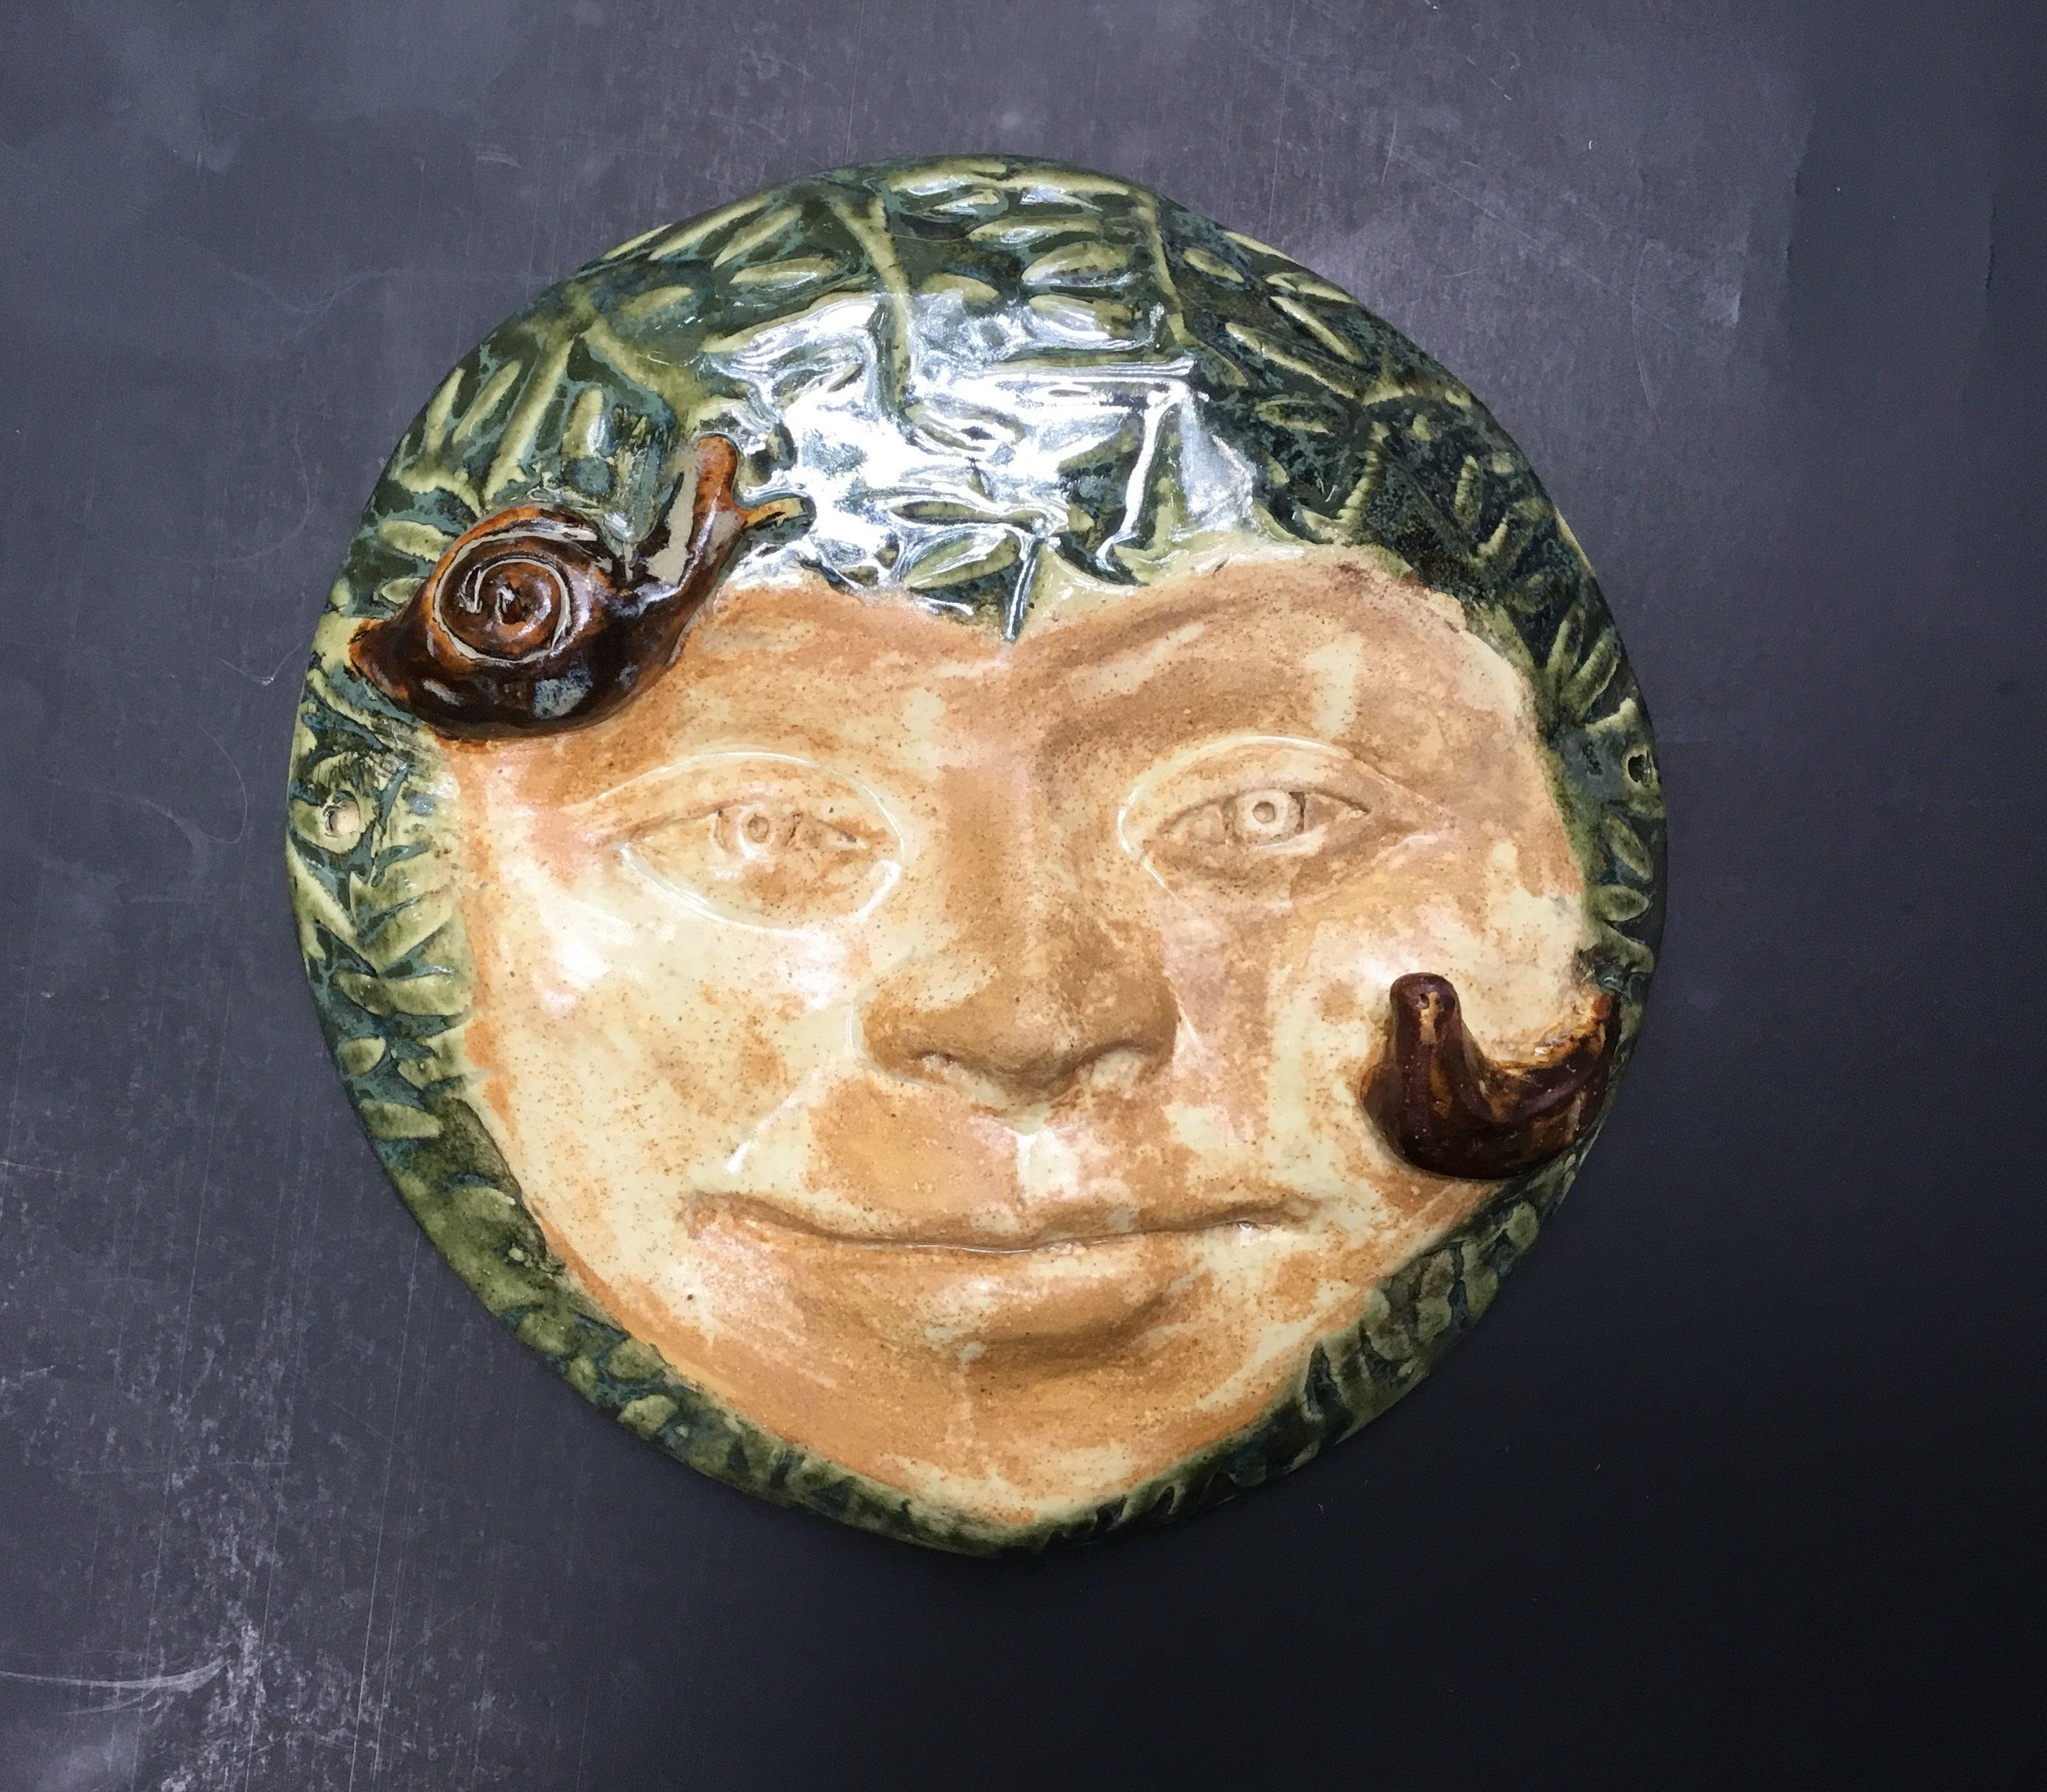 Ceramic garden mask, woman face mask with snail and bird  Wall mask, ceramic wall art, pottery mask, garden art, housewarming gift is part of Pottery garden Art - wallmaskfacesculpturethefaceofthe